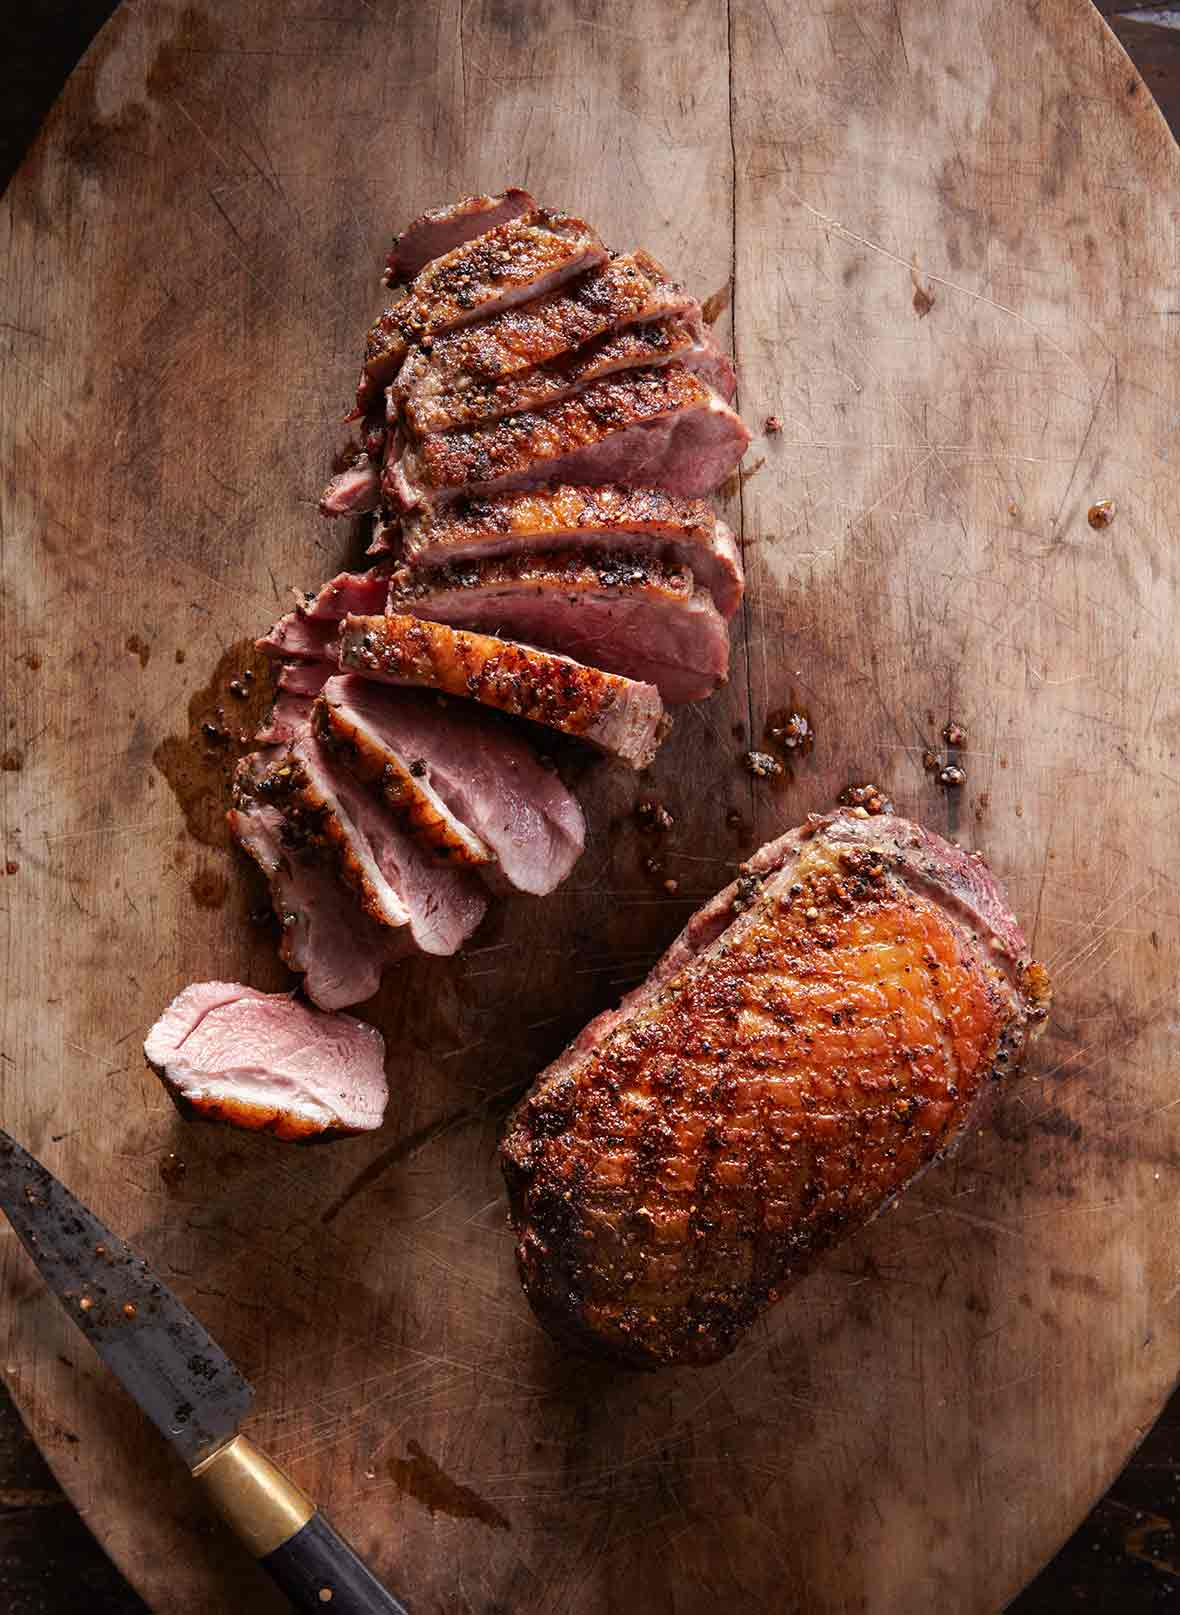 Two seared duck breasts, one sliced, the other whole on a wood cutting board